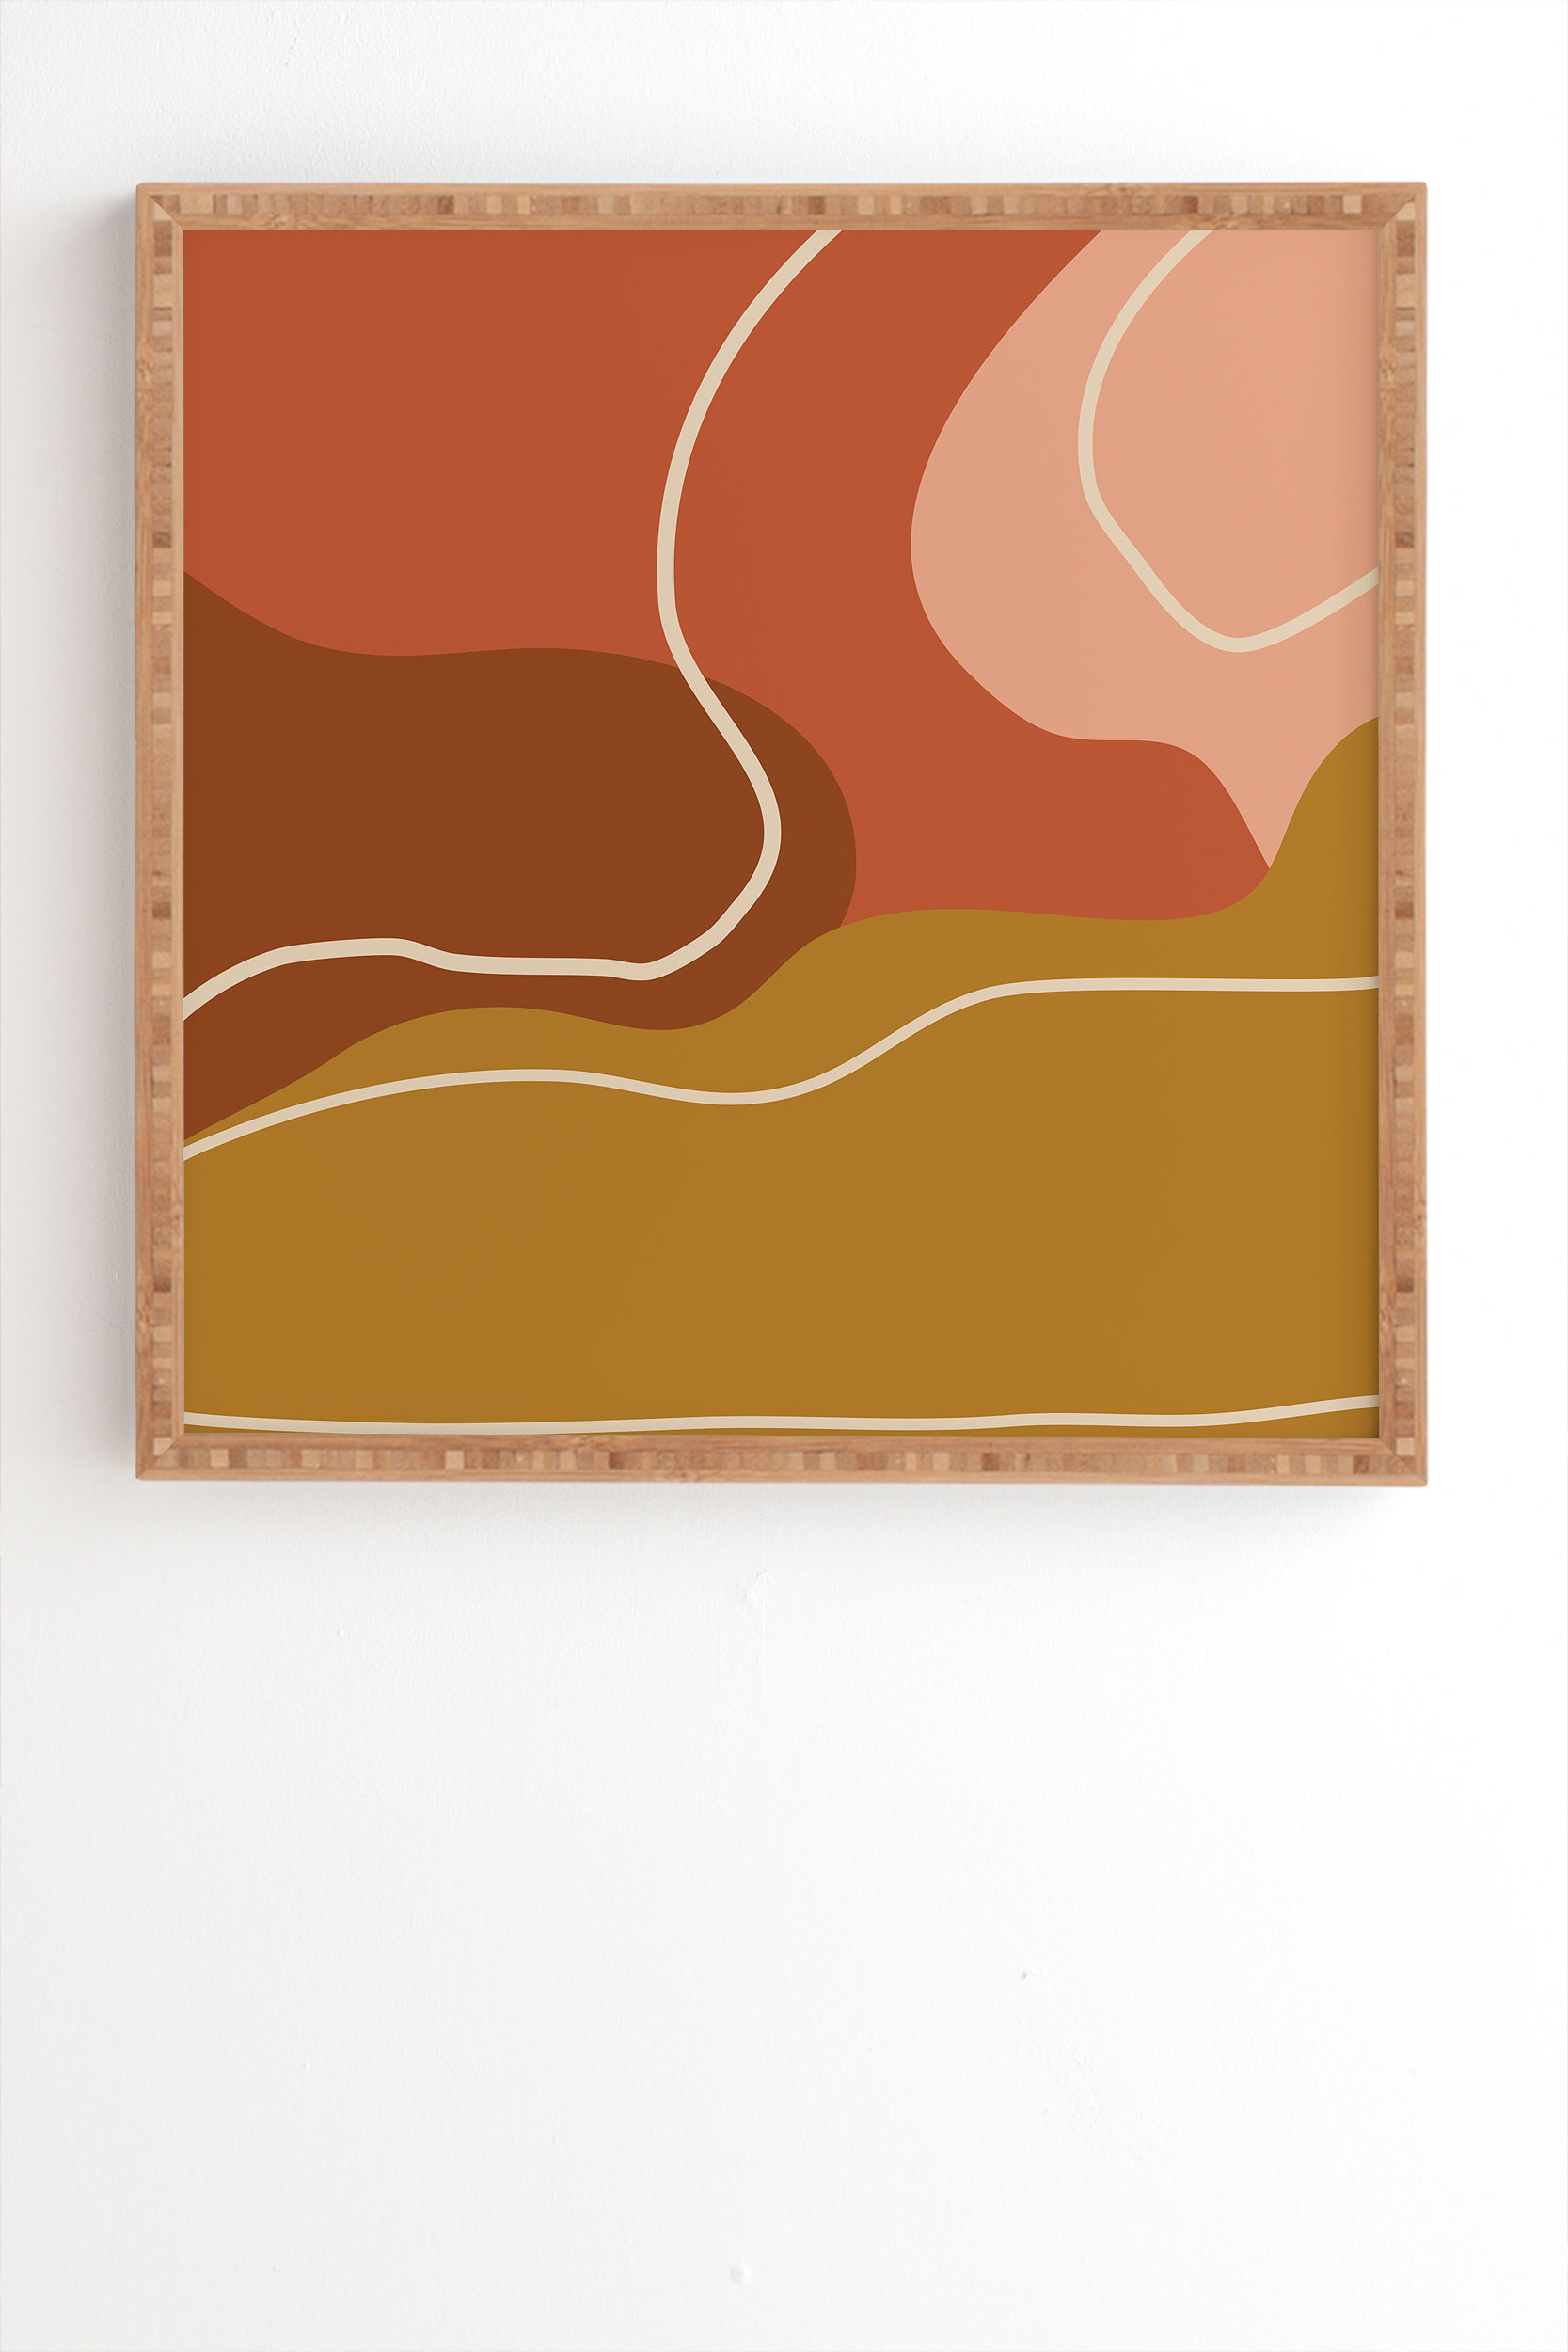 """Abstract Organic Shapes In Zen by June Journal - Framed Wall Art Bamboo 8"""" x 9.5"""""""